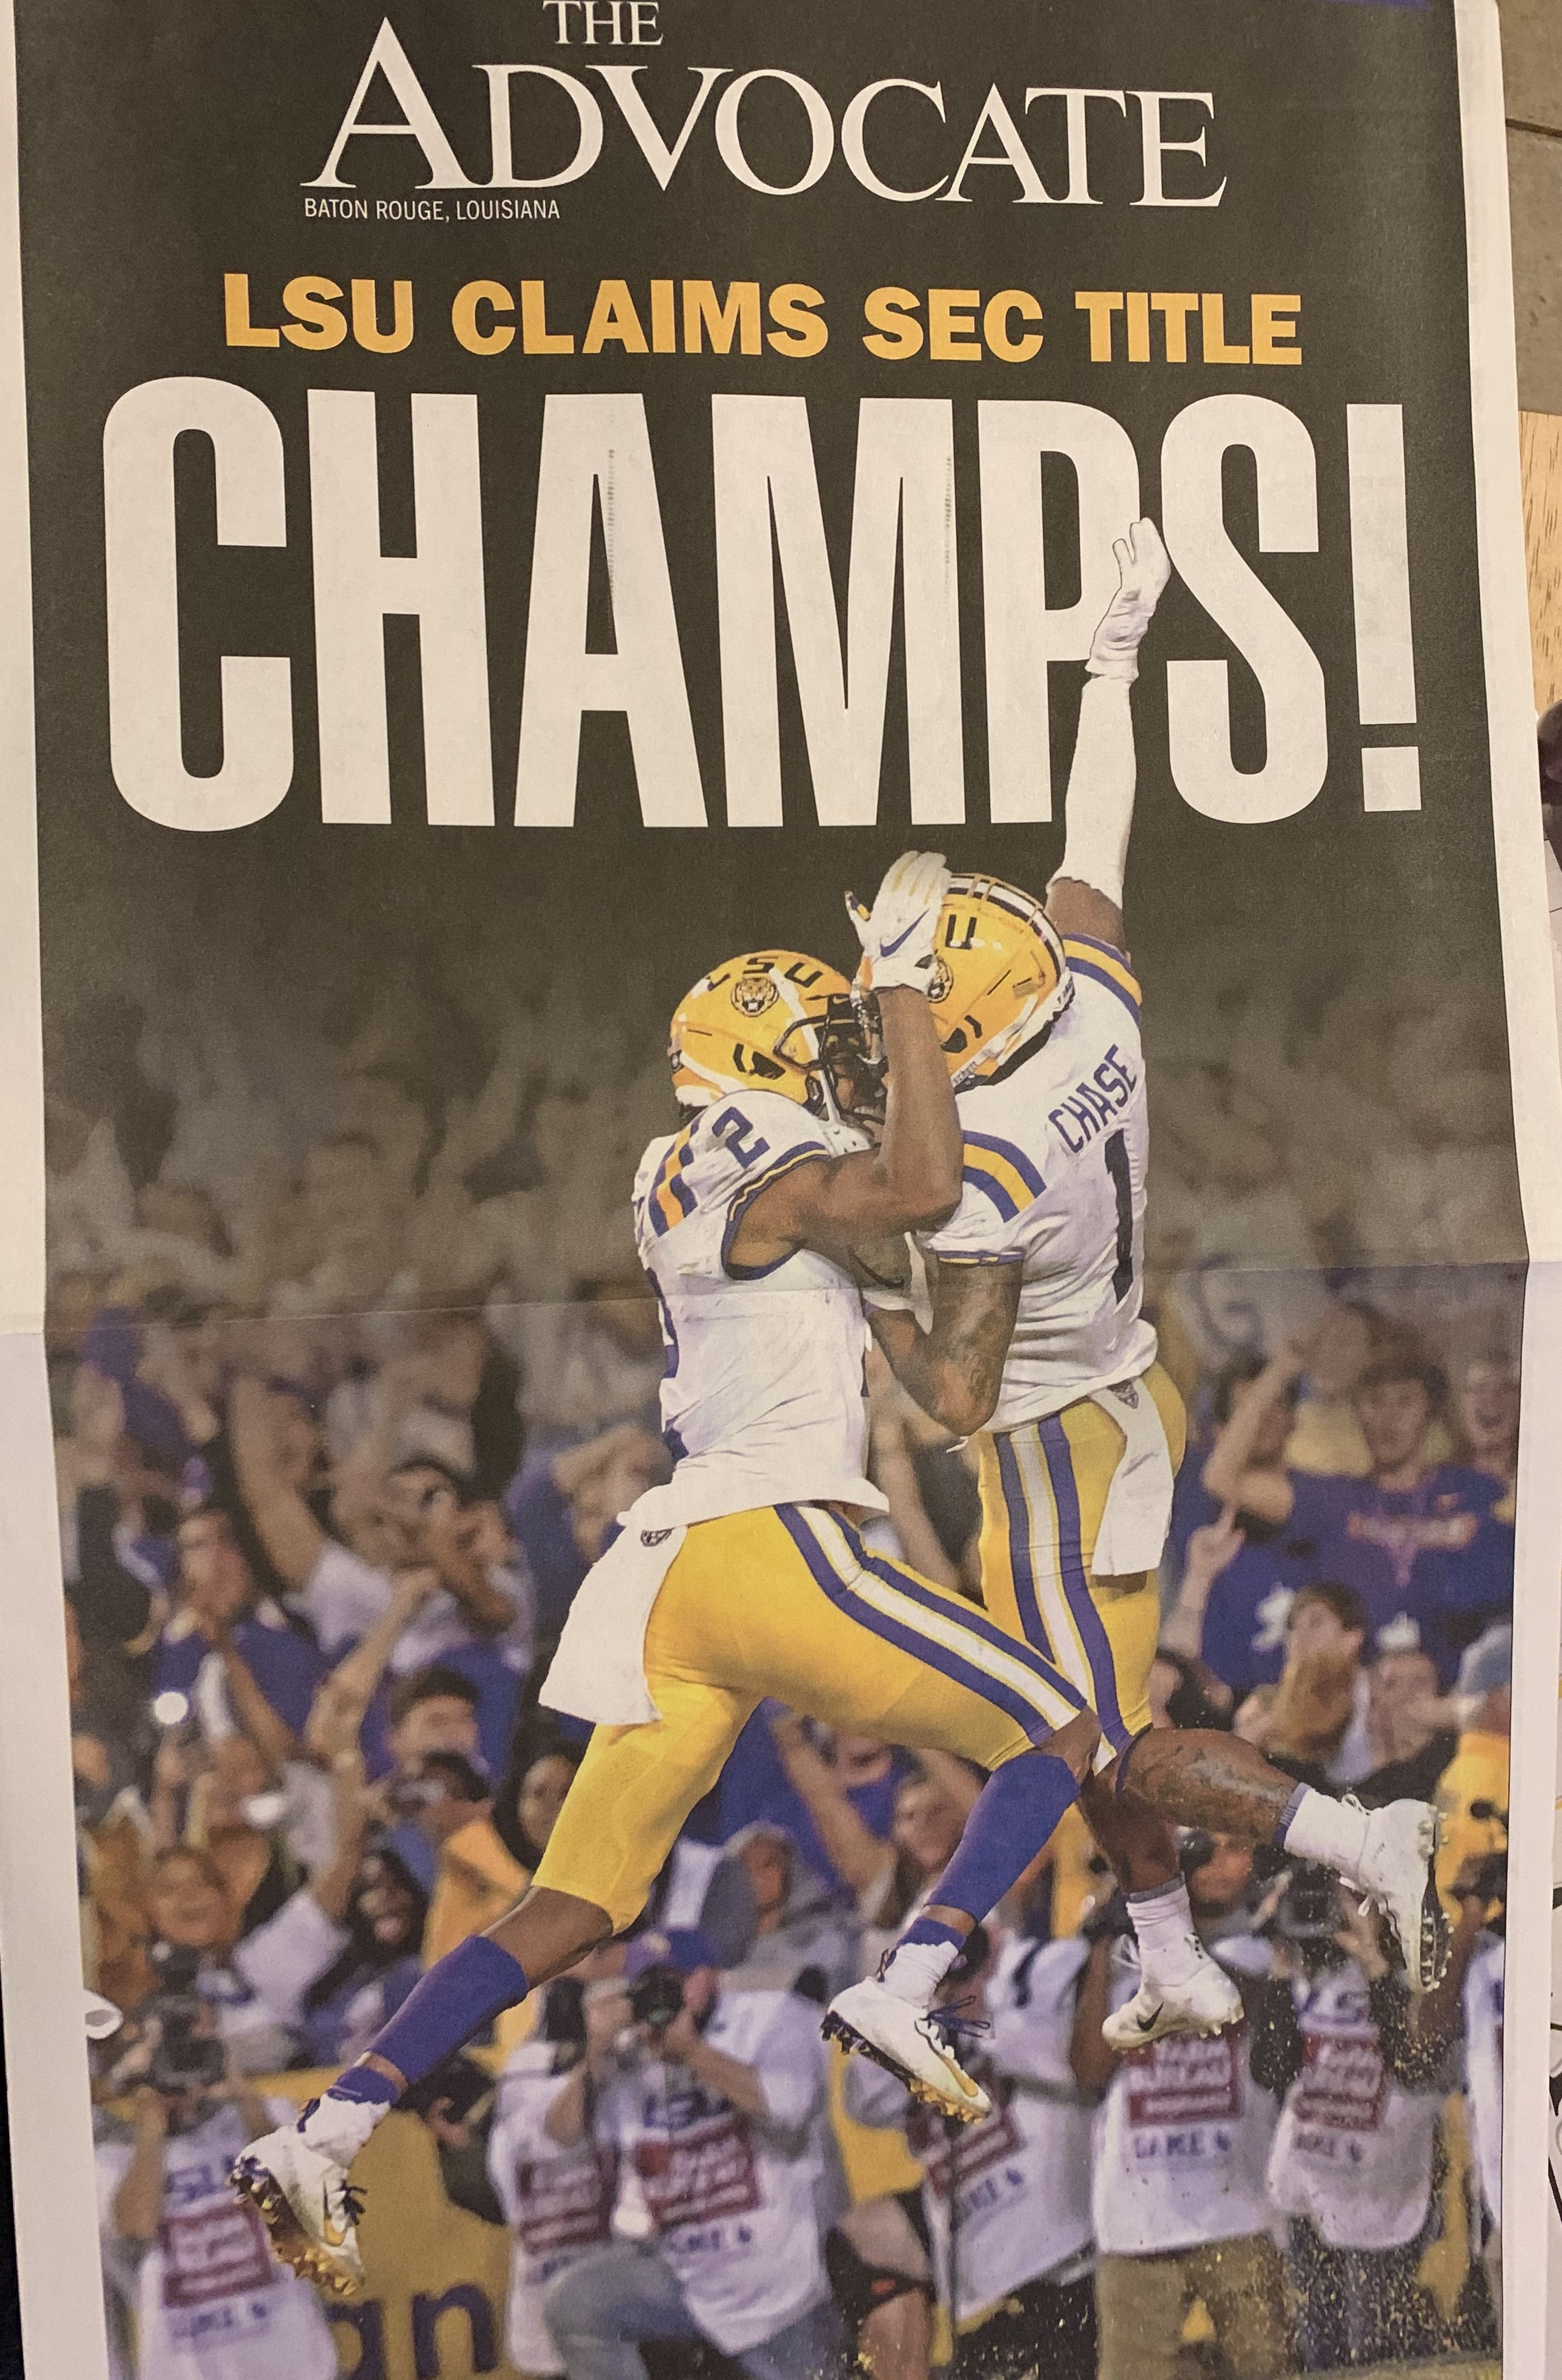 Pin by Jennifer Hicks on Geaux Tigers in 2020 (With images